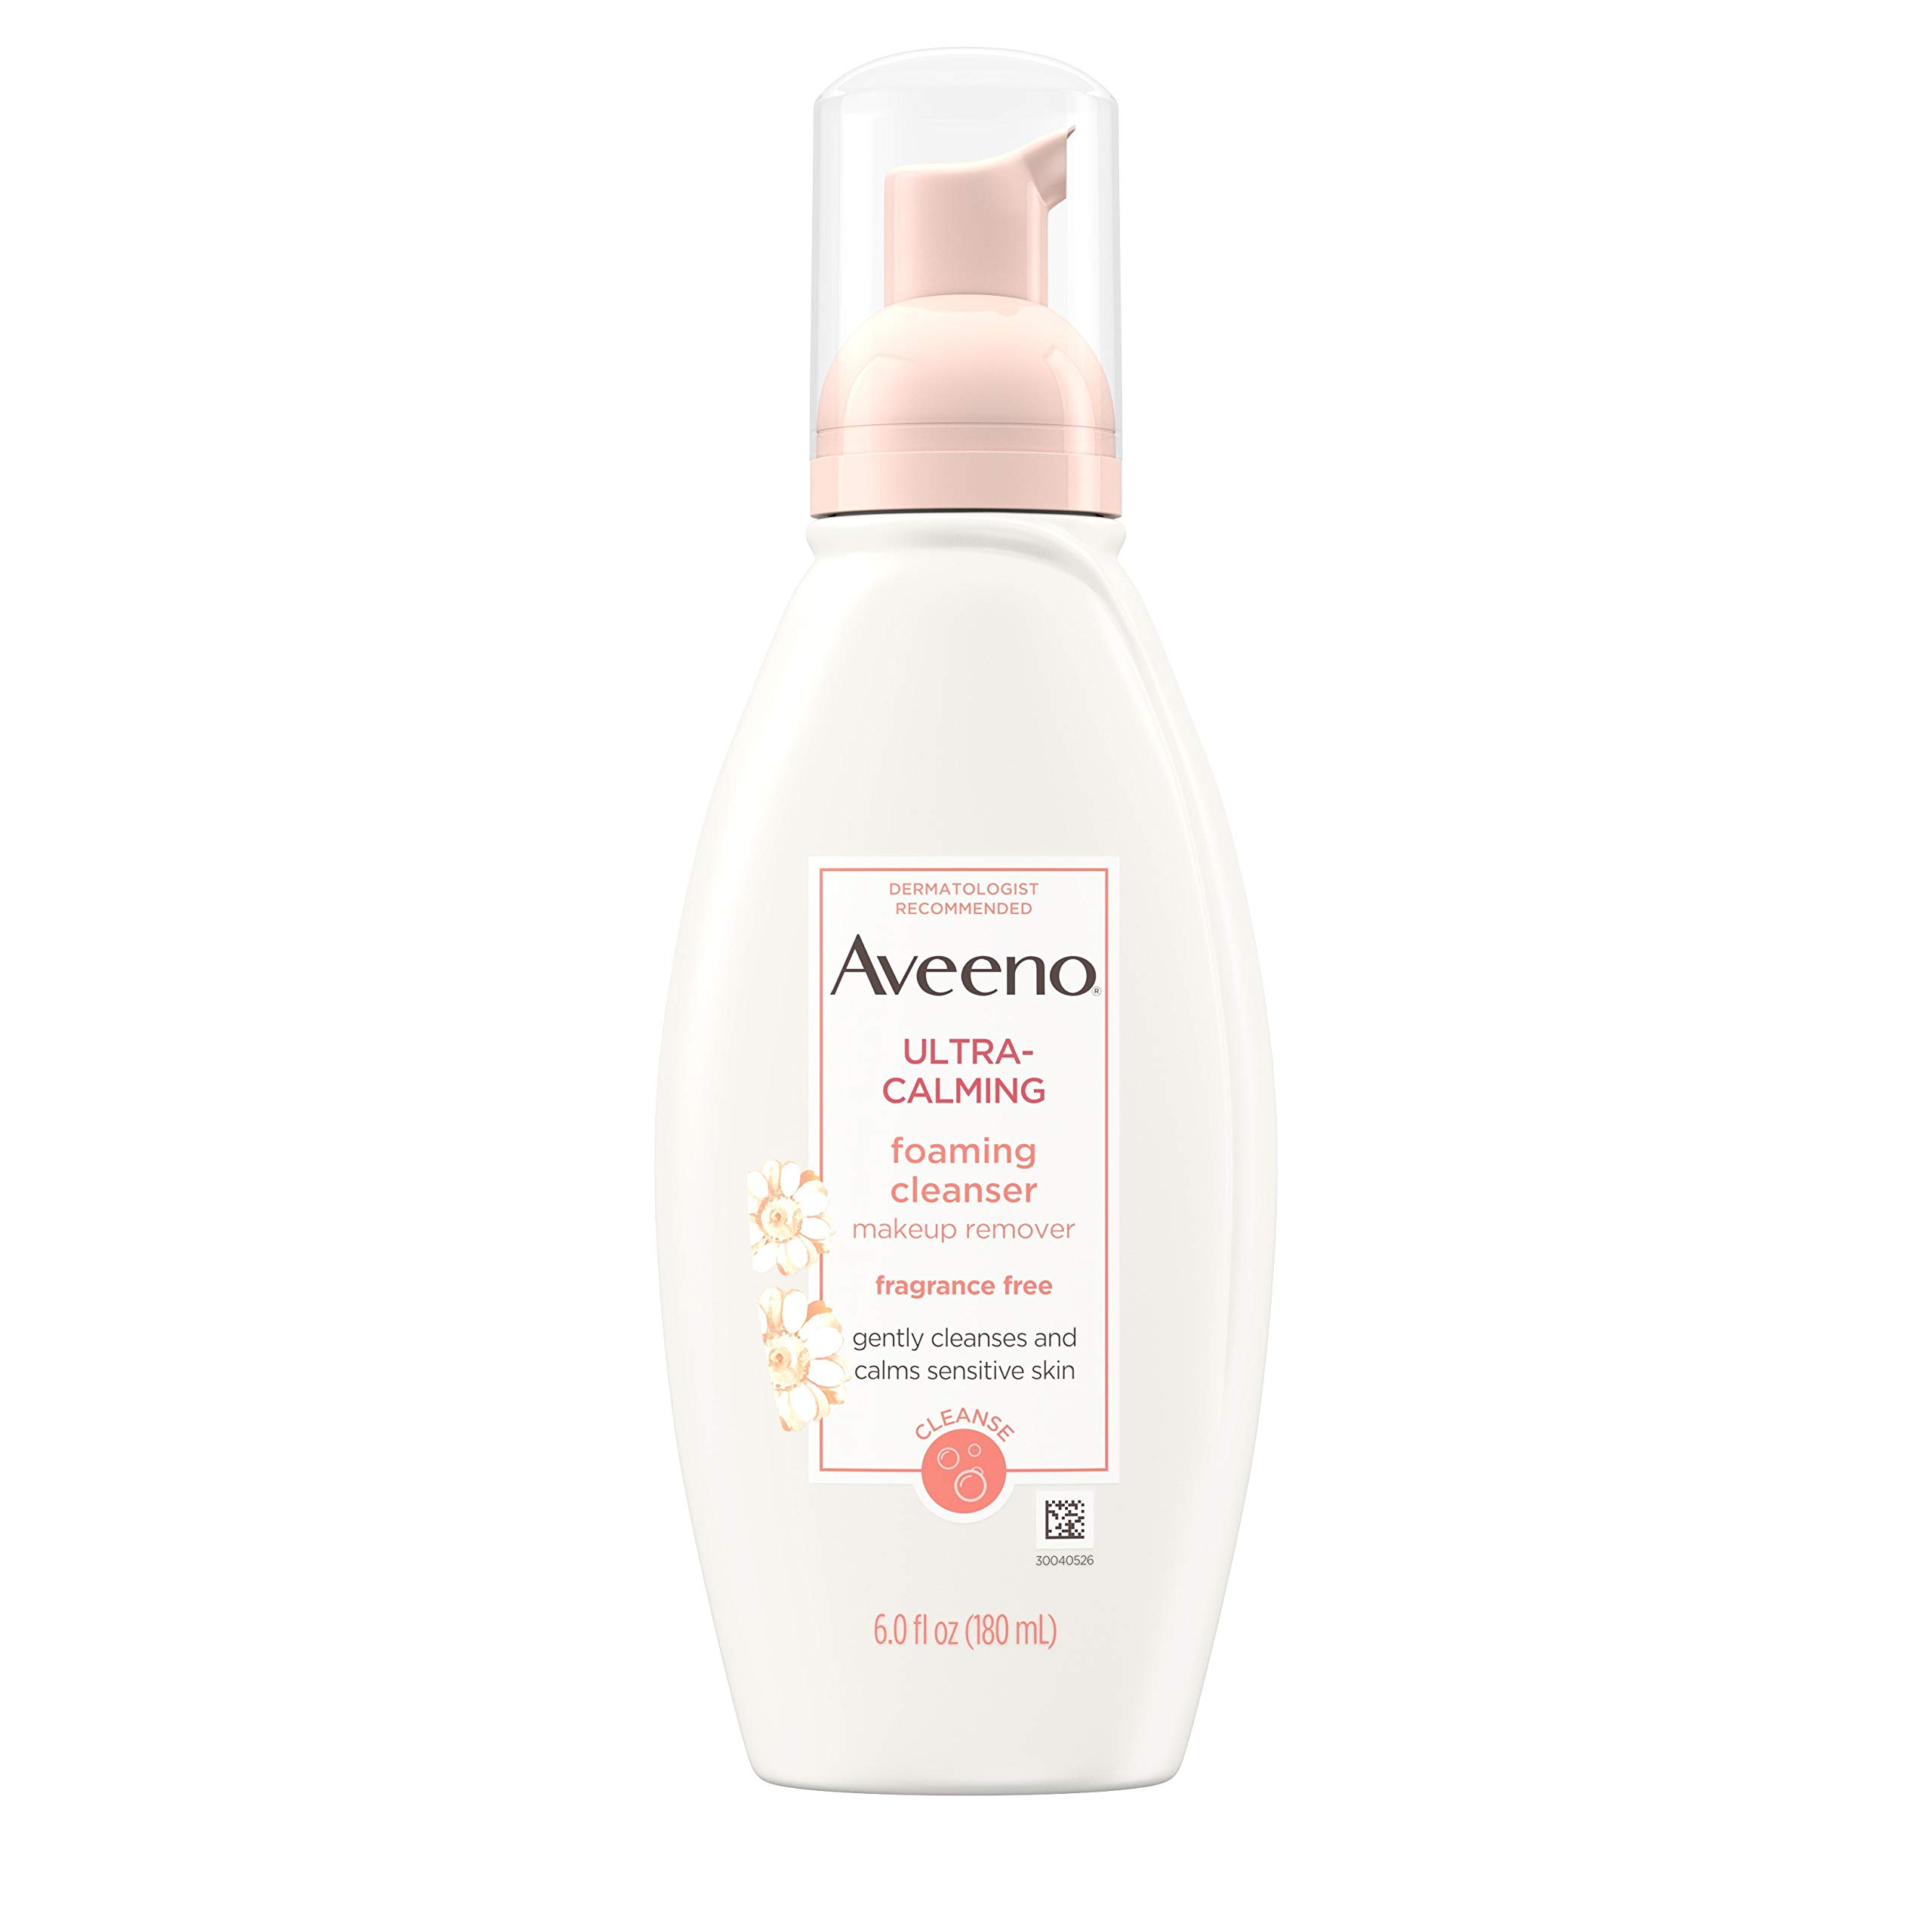 Aveeno Ultra-Calming Foaming Cleanser & Makeup Remover Facial Cleanser with Calming Feverfew, Face Wash for Dry & Sensitive Skin, Hypoallergenic, Fragrance-Free & Non-Comedogenic, Unscented, 6 Fl Oz